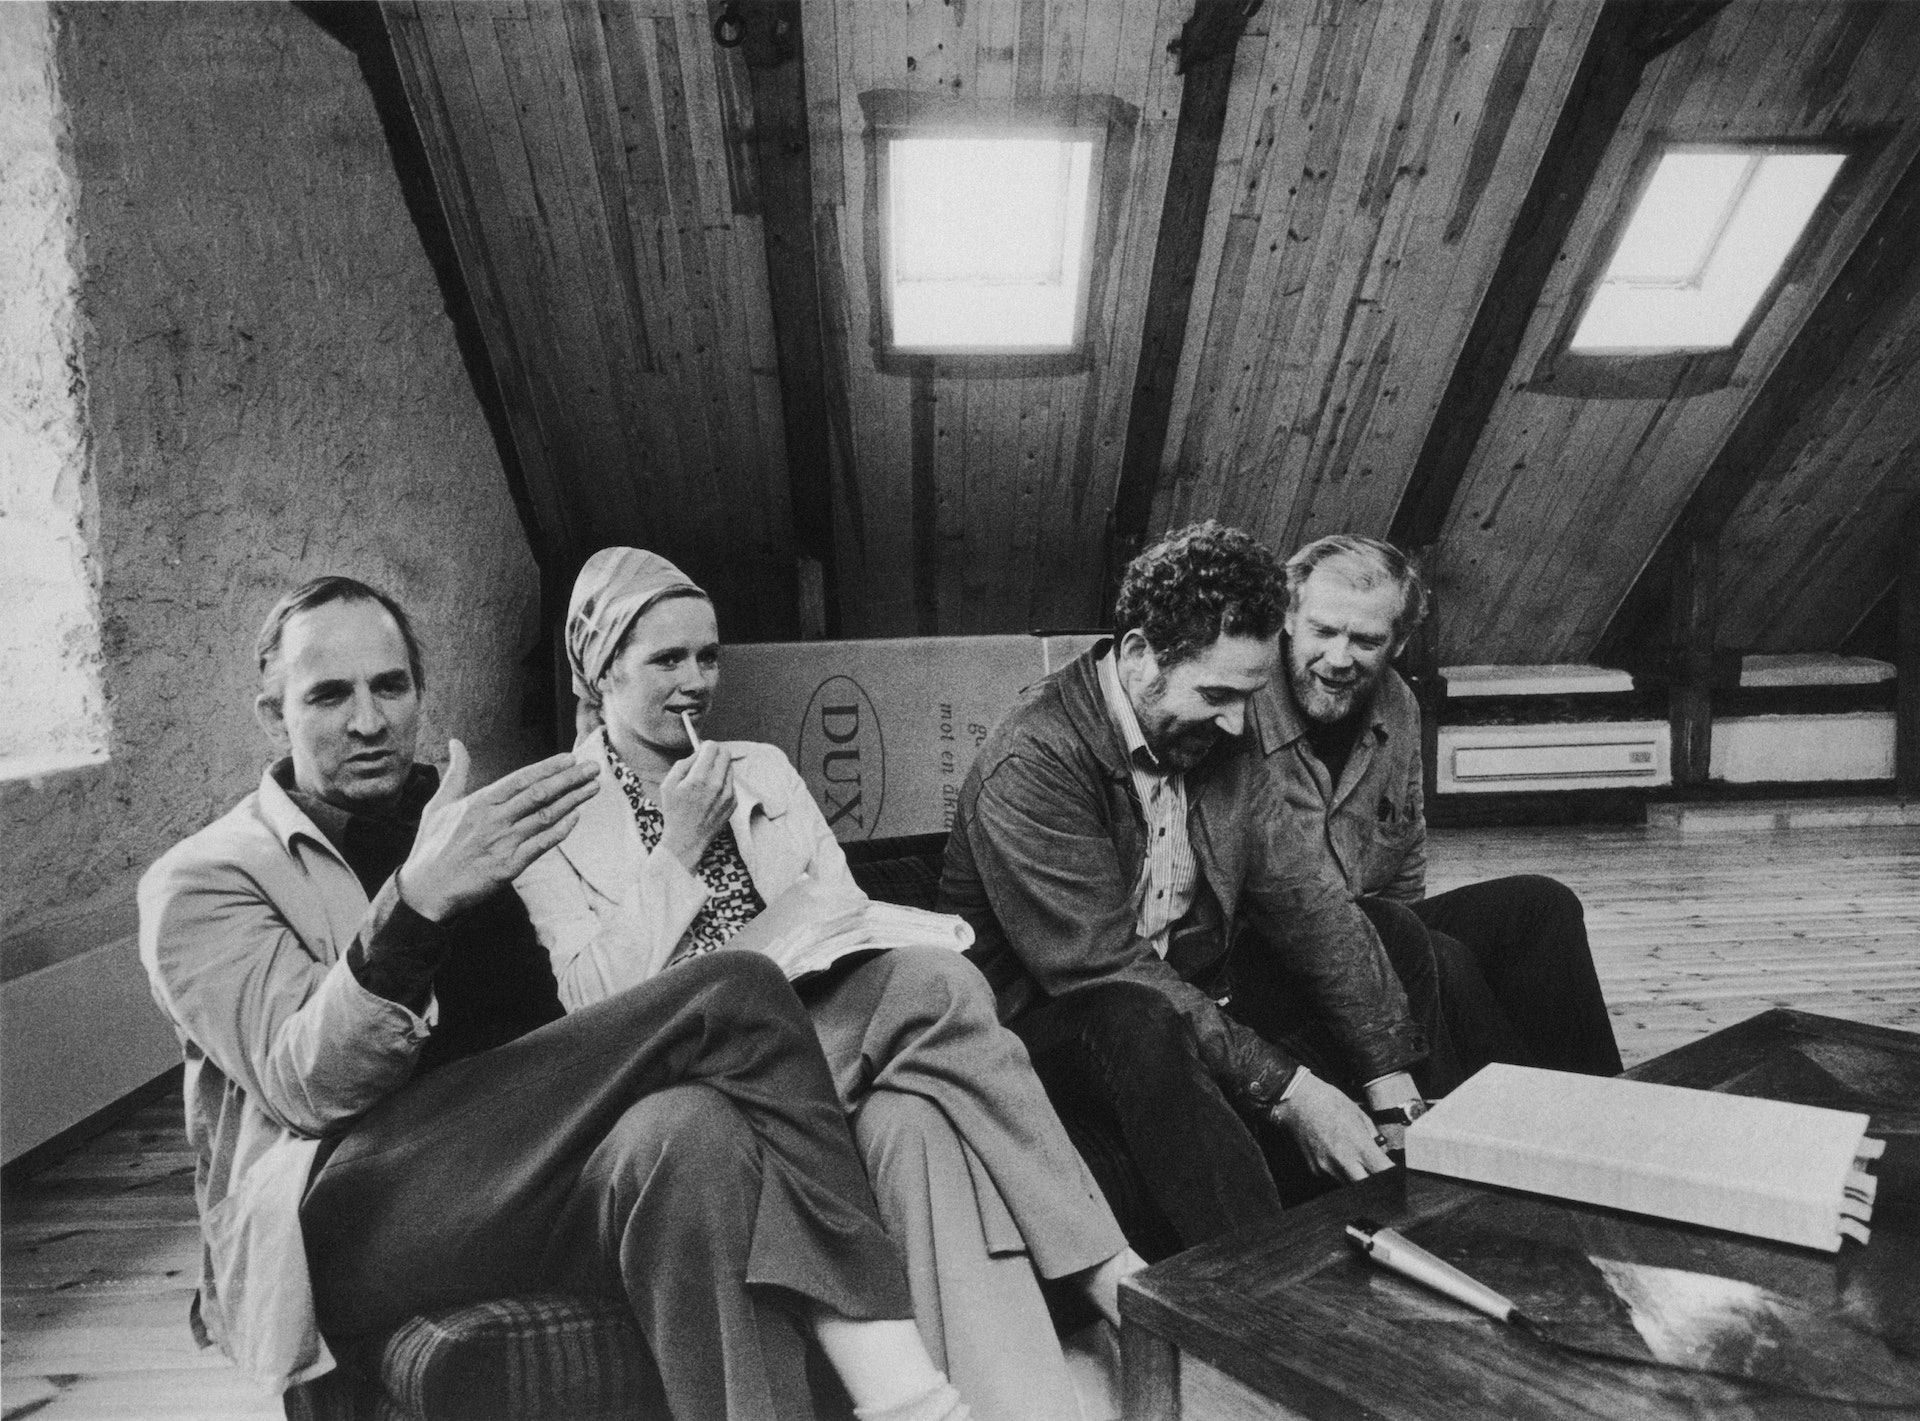 How Ingmar Bergman's Scenes From a Marriage Became the Most Imitated Show of 2021